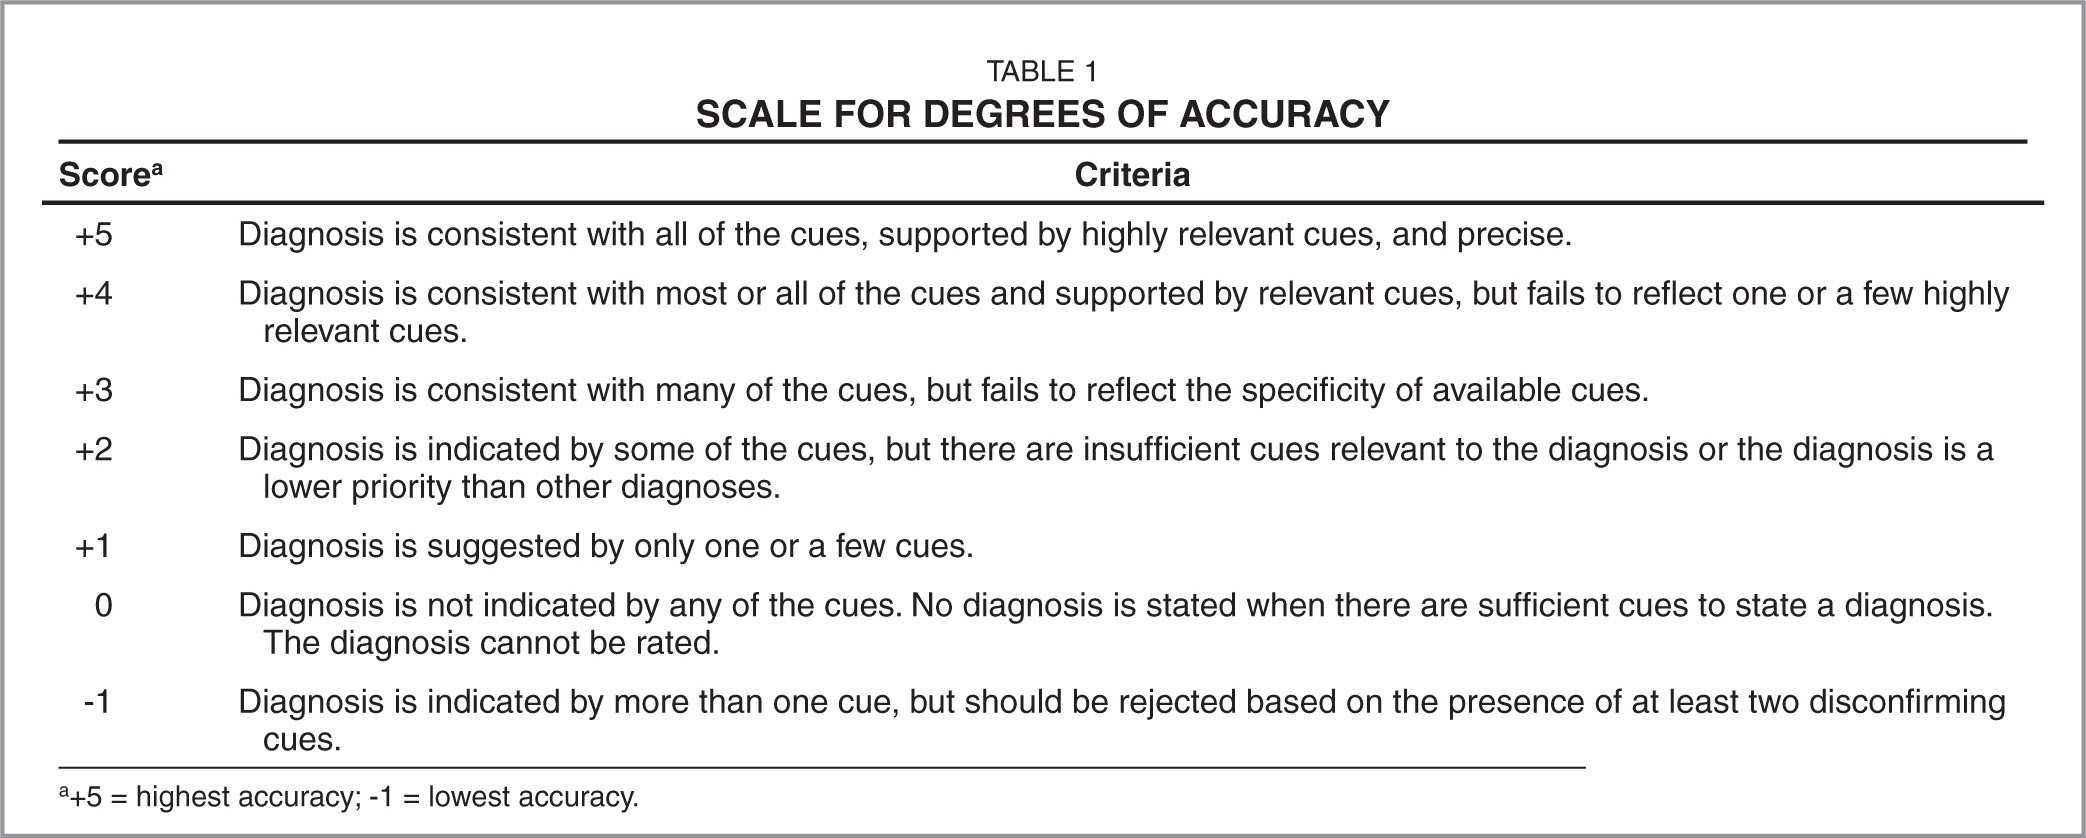 Scale for Degrees of Accuracy